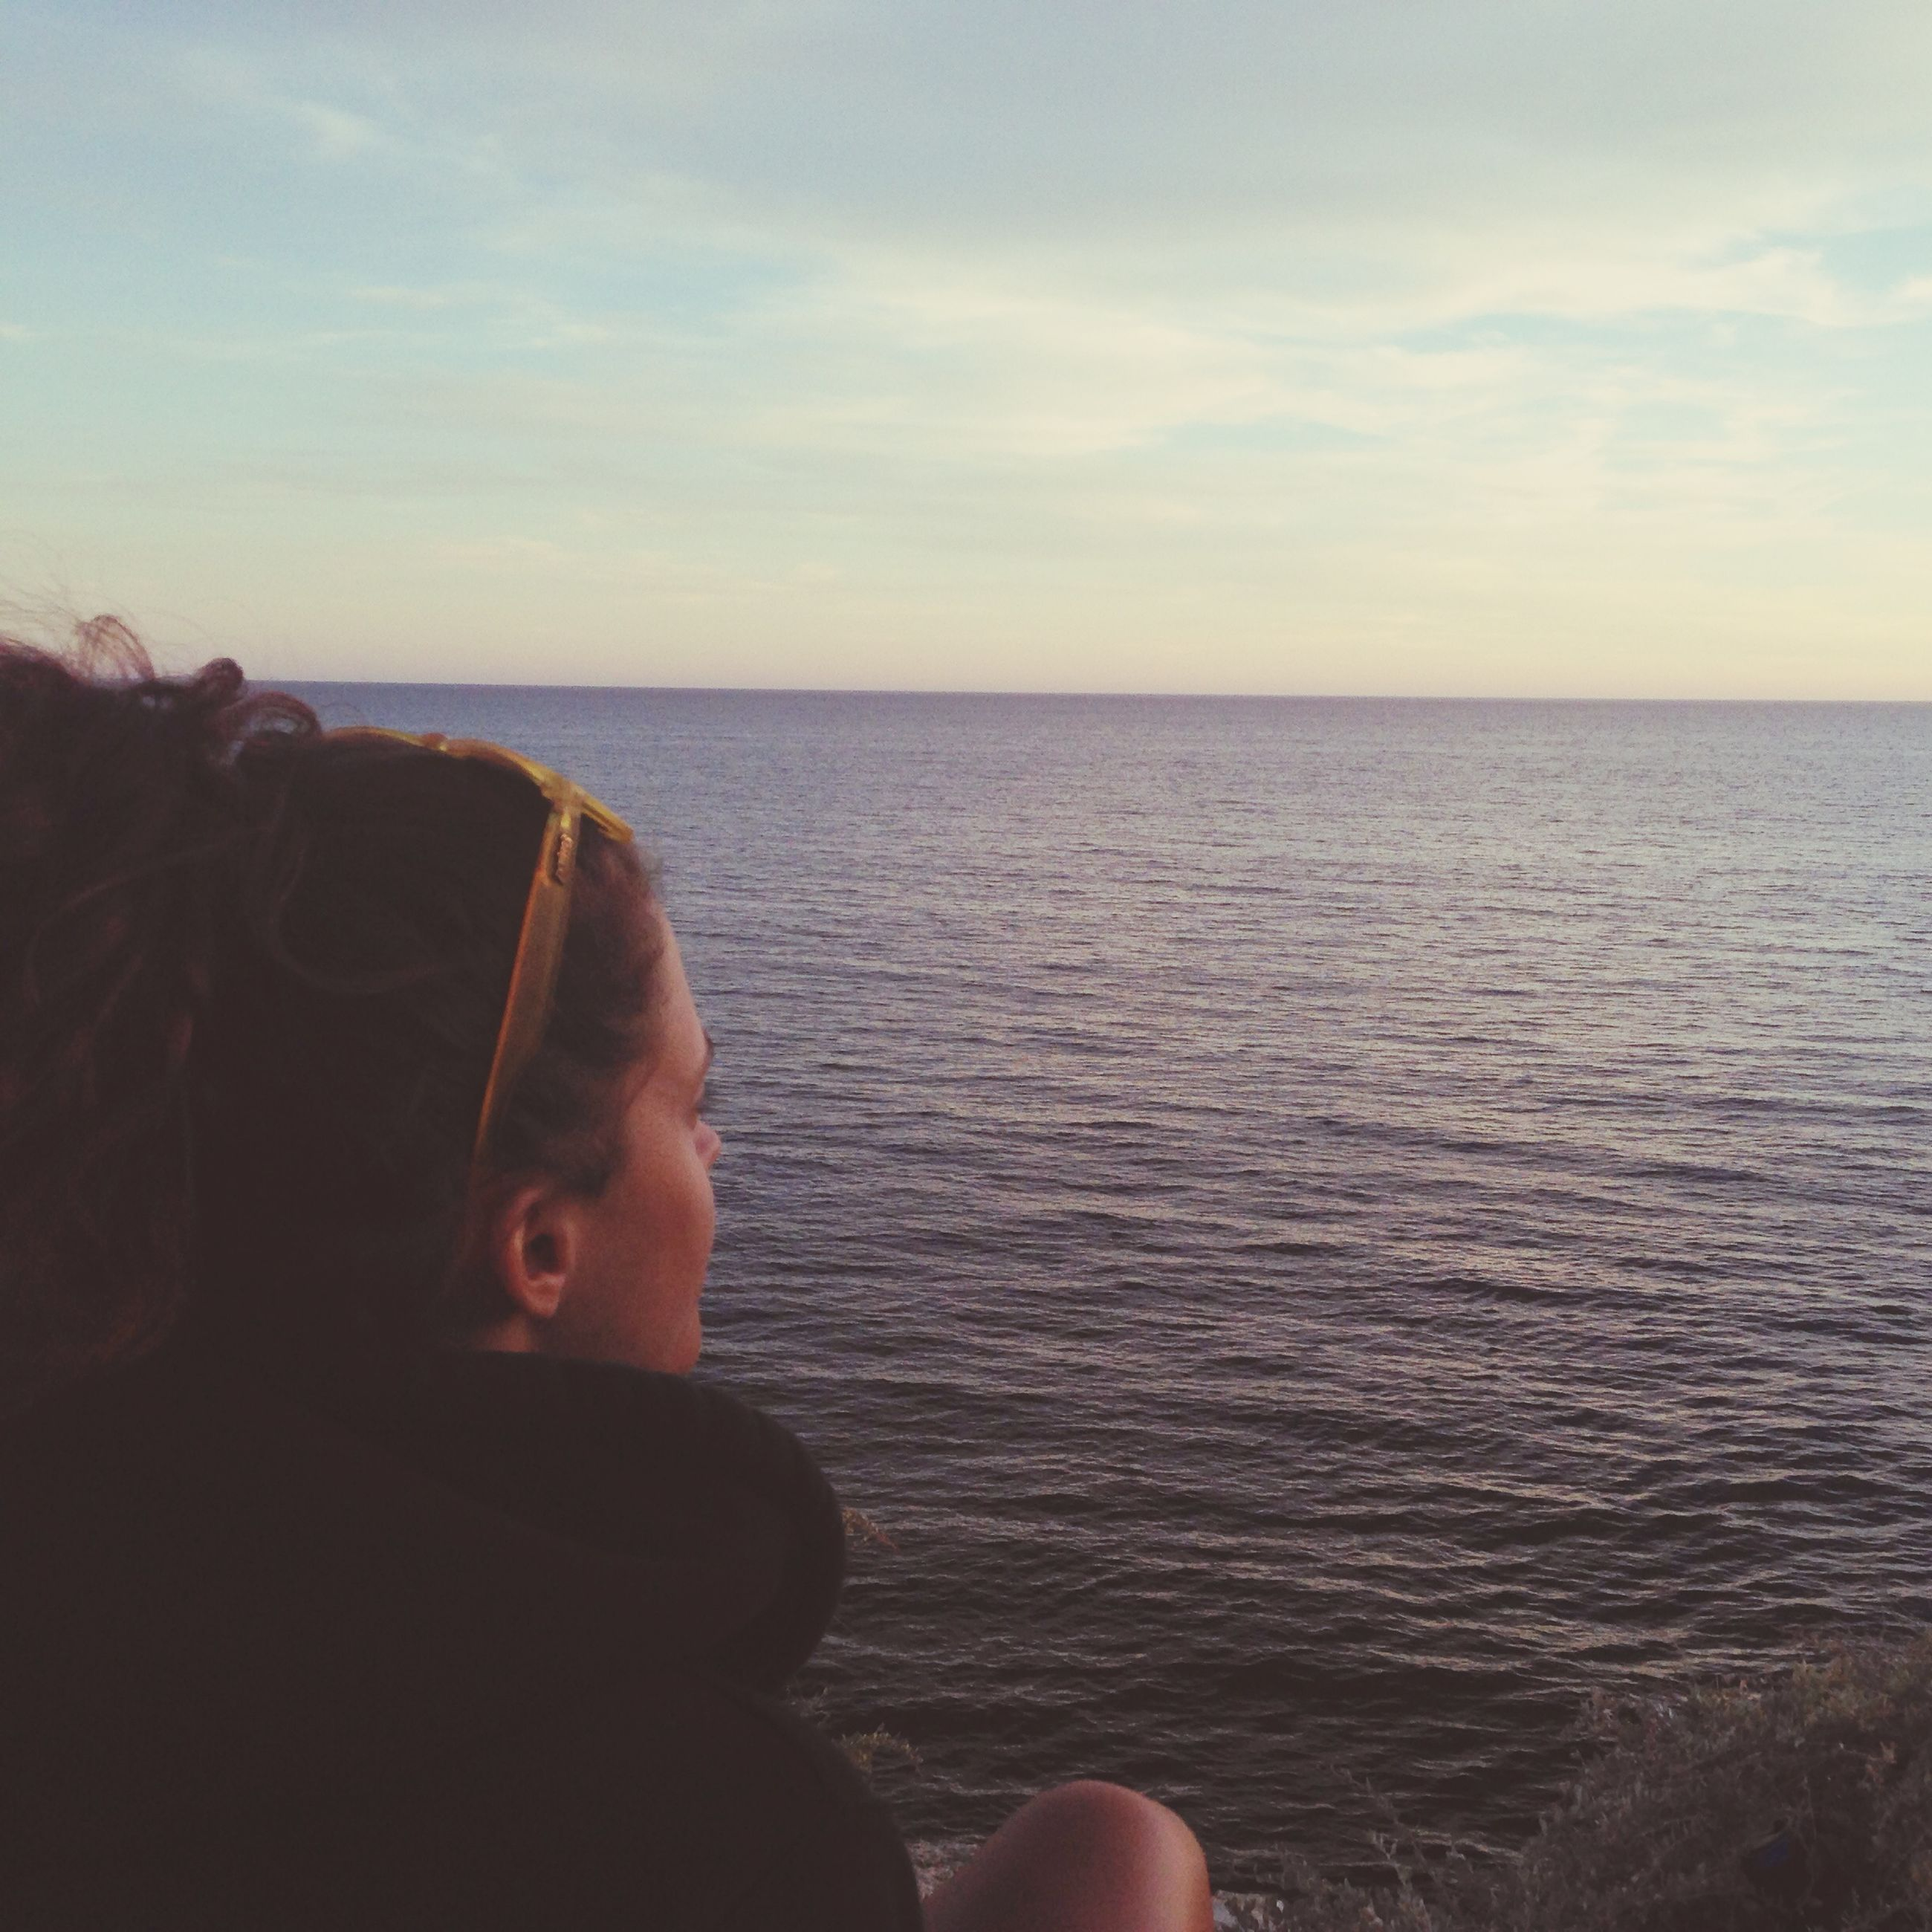 sea, horizon over water, water, sky, personal perspective, lifestyles, leisure activity, scenics, beauty in nature, tranquil scene, tranquility, part of, nature, person, cropped, idyllic, beach